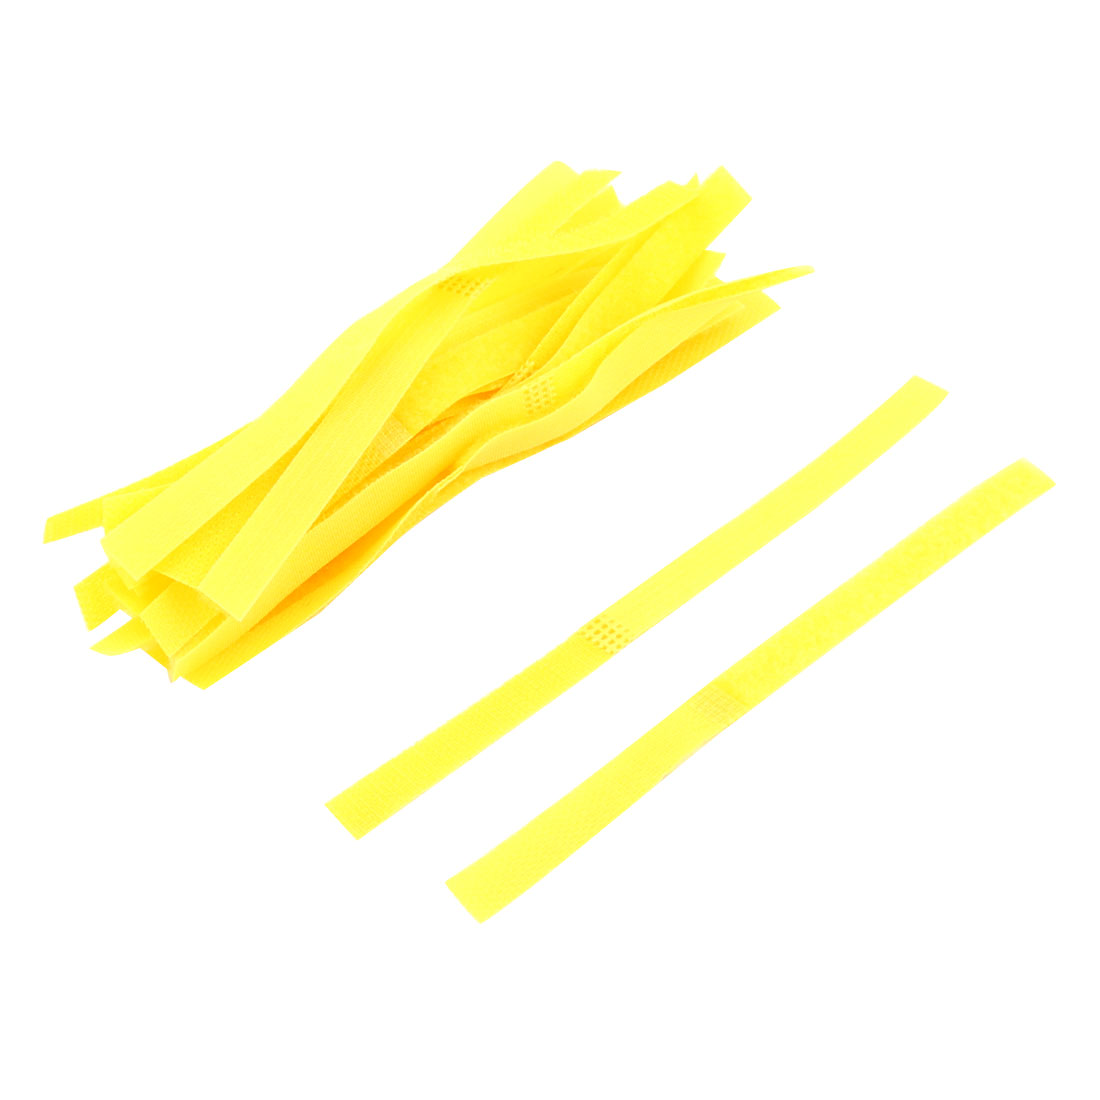 Nylon Loop Fastener Wire Organizer Cable Ties Tape Strap Yellow 20 PCS